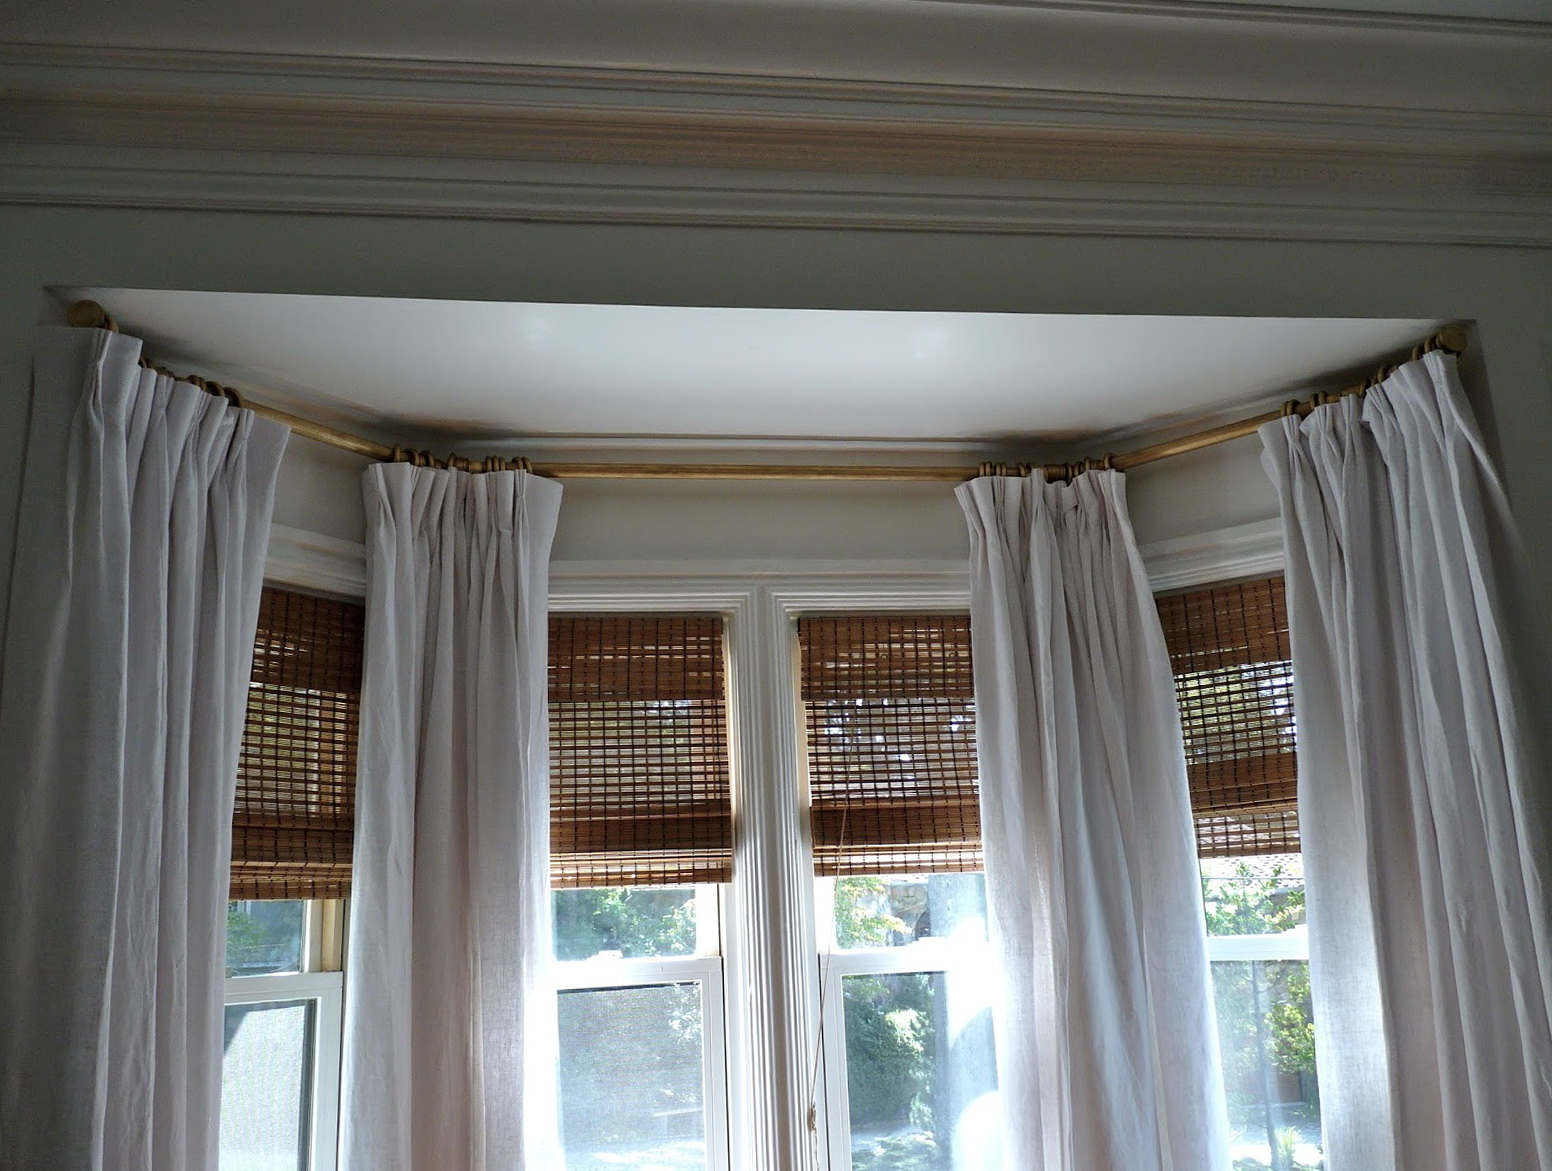 Where To Buy Curtain Rods For Bay Windows